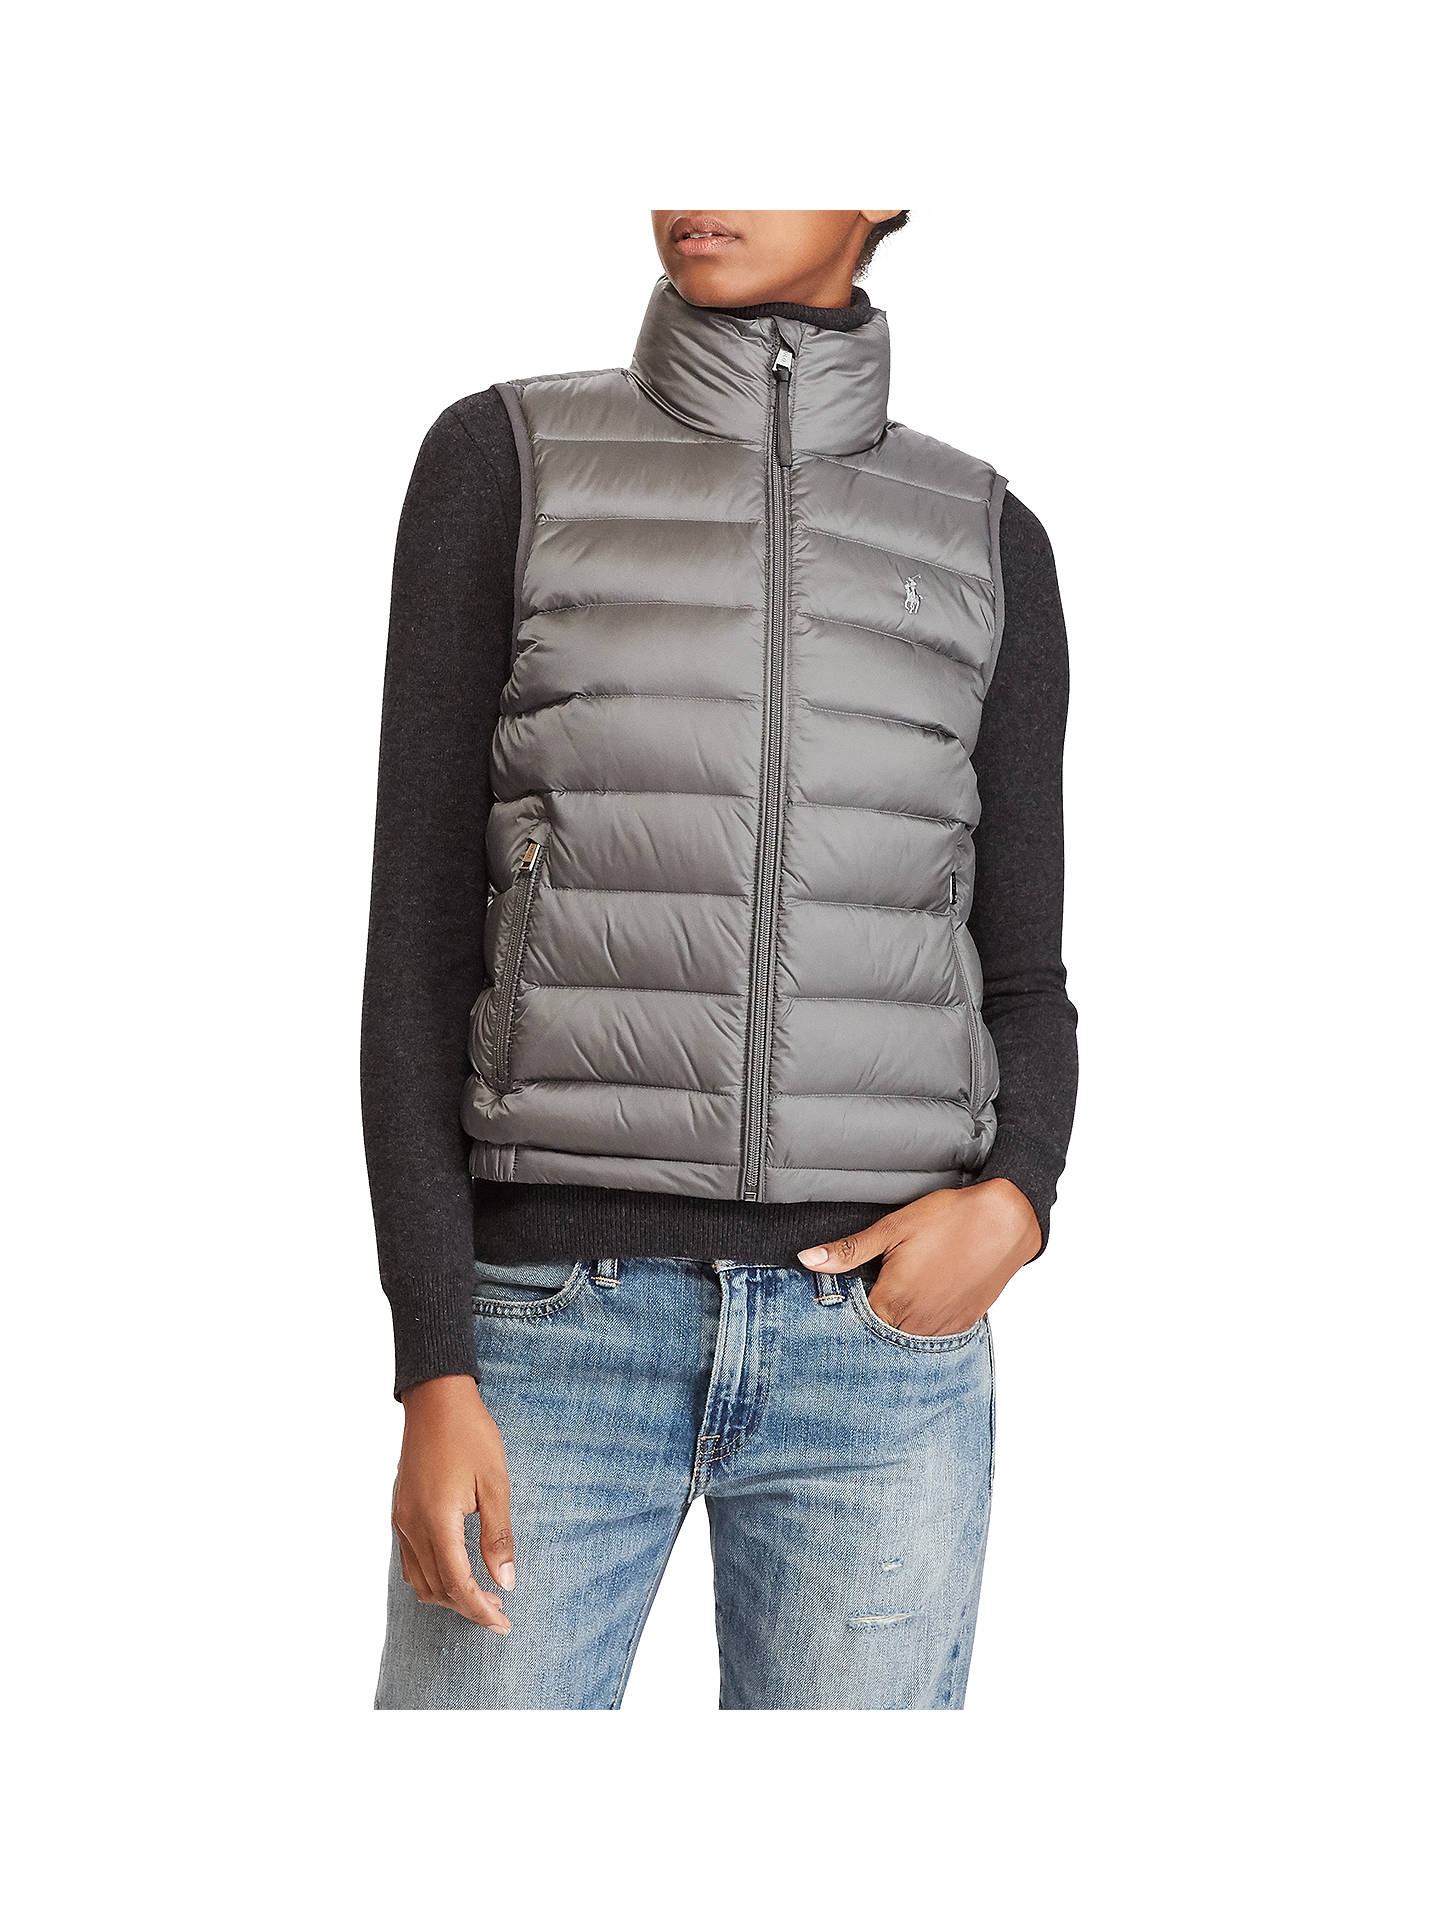 be84adb16 Polo Ralph Lauren Packable Quilted Down Gilet, Magnum Grey at John ...